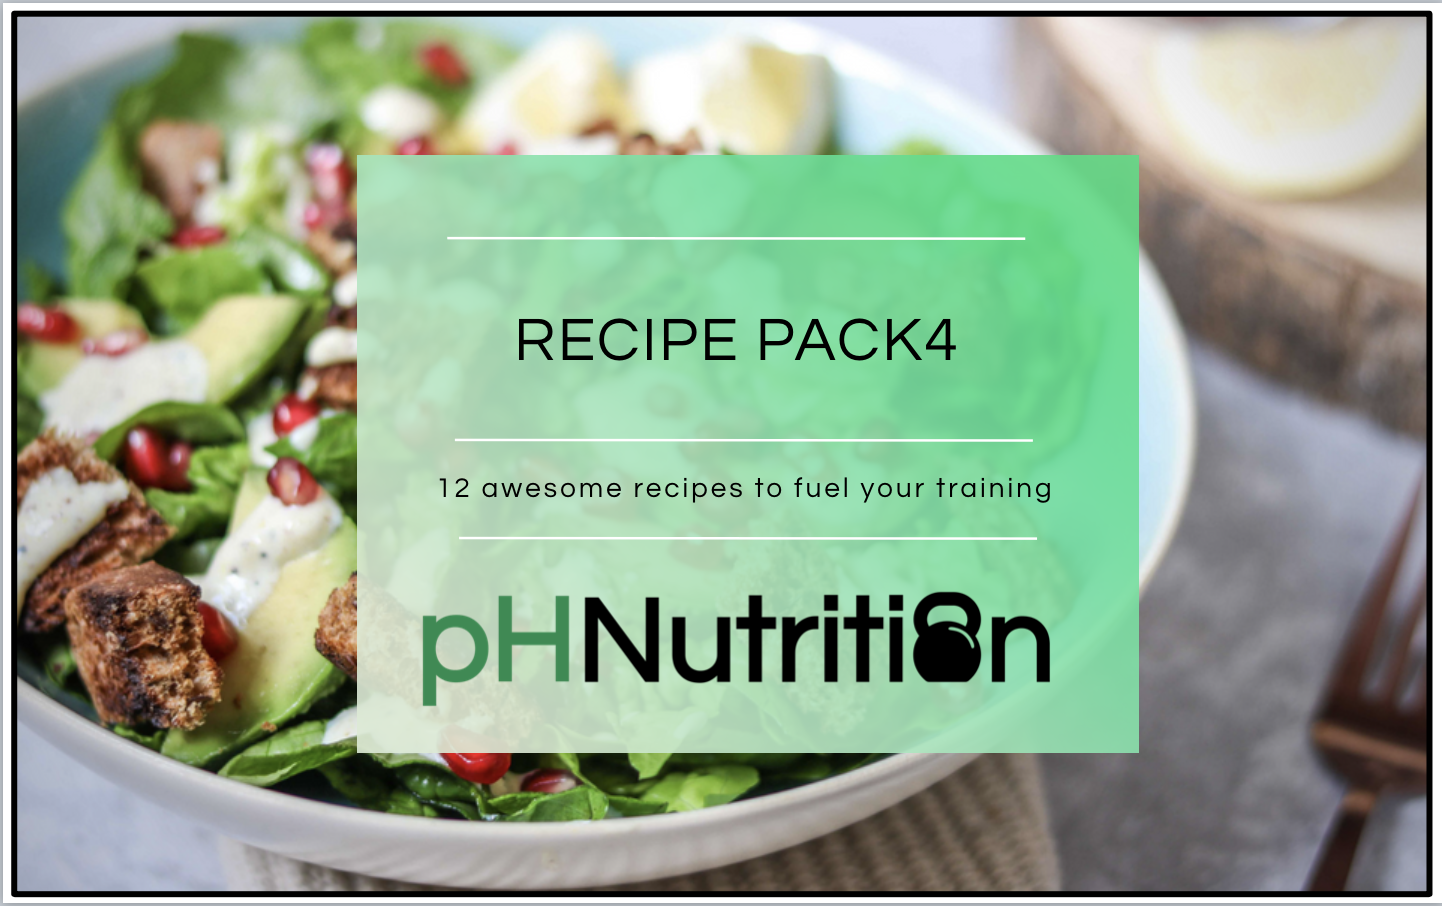 MONTH 4 - 12 awesome recipes to help fuel your training.A few highlights include the sweetcorn fritters, chipotle chicken salad bowl, the smoothie and the courgette blondies!